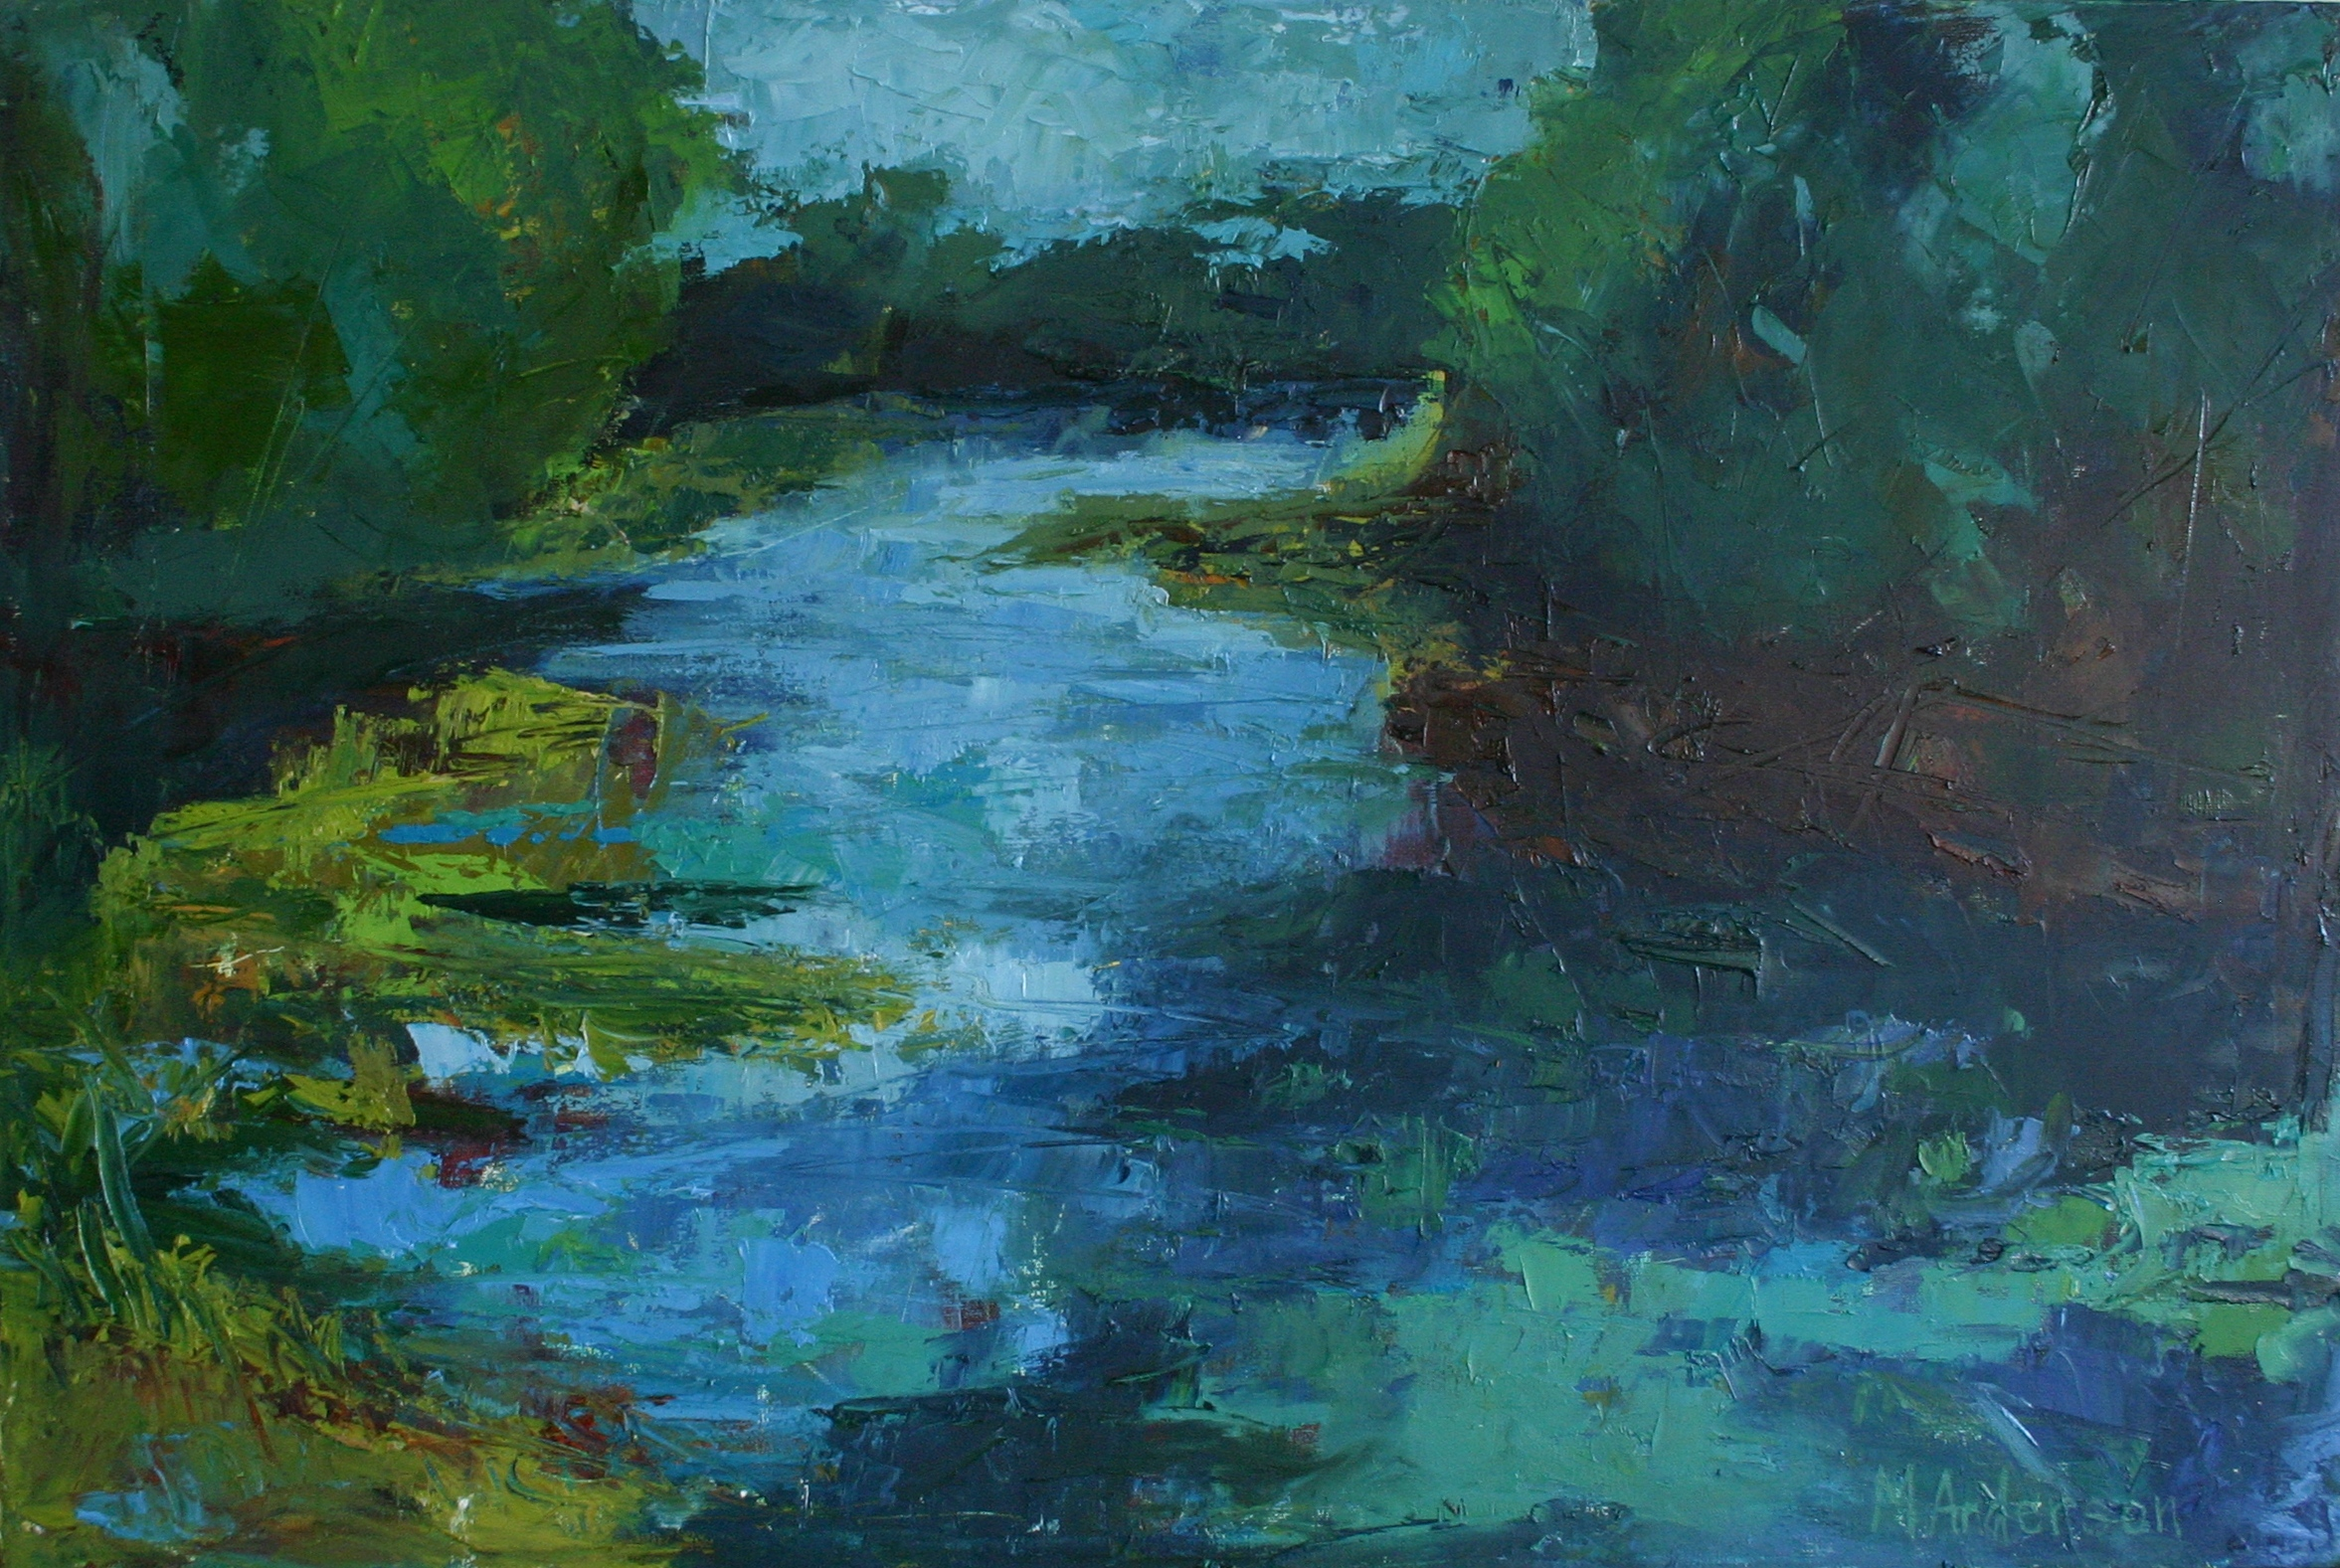 Black River (20x30 Canvas) - Sold